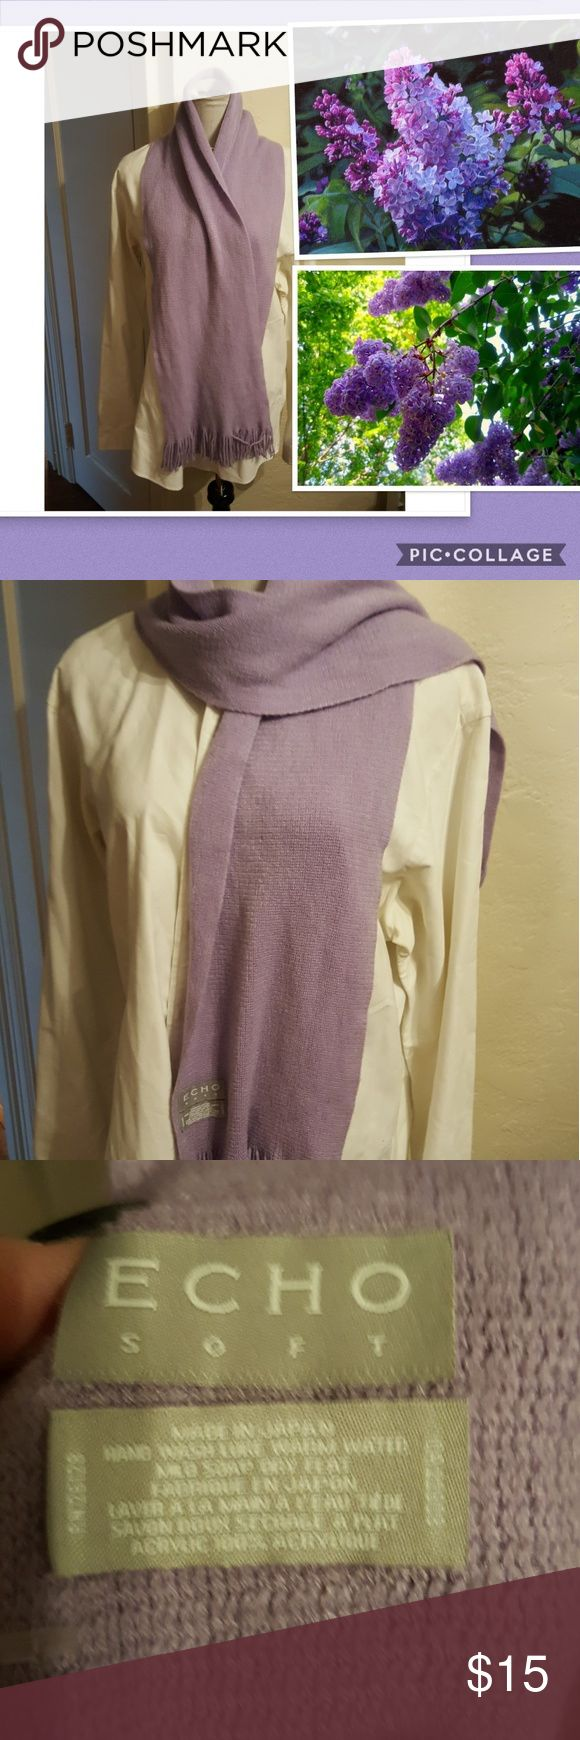 Soft Heather Echo scarf Just because the weather has turned cold or it doesn't mean we can't think of spring. Great scarf. Echo Accessories Scarves & Wraps